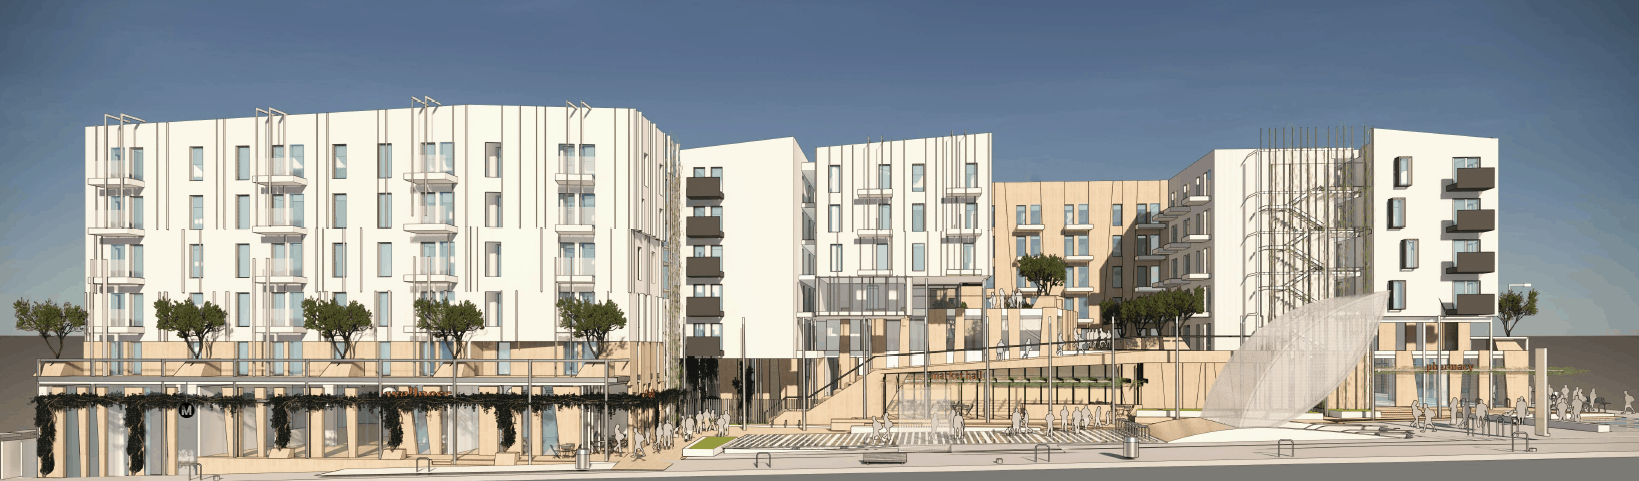 New Renderings of the Vermont/Santa Monica Project